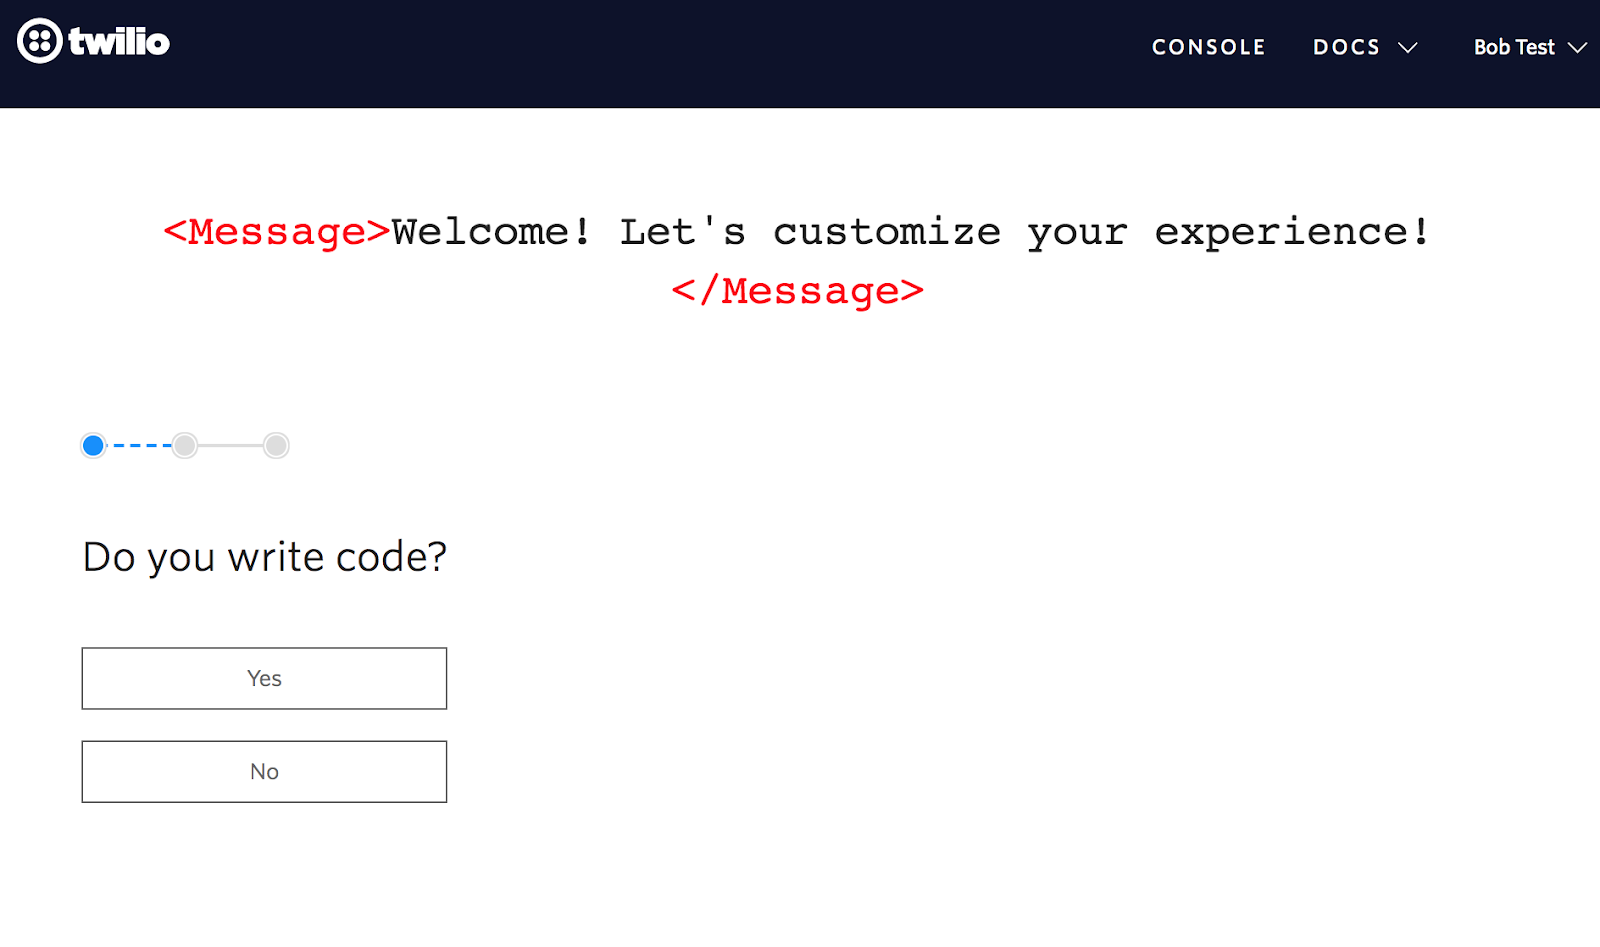 twilio user onboarding personalization question 1